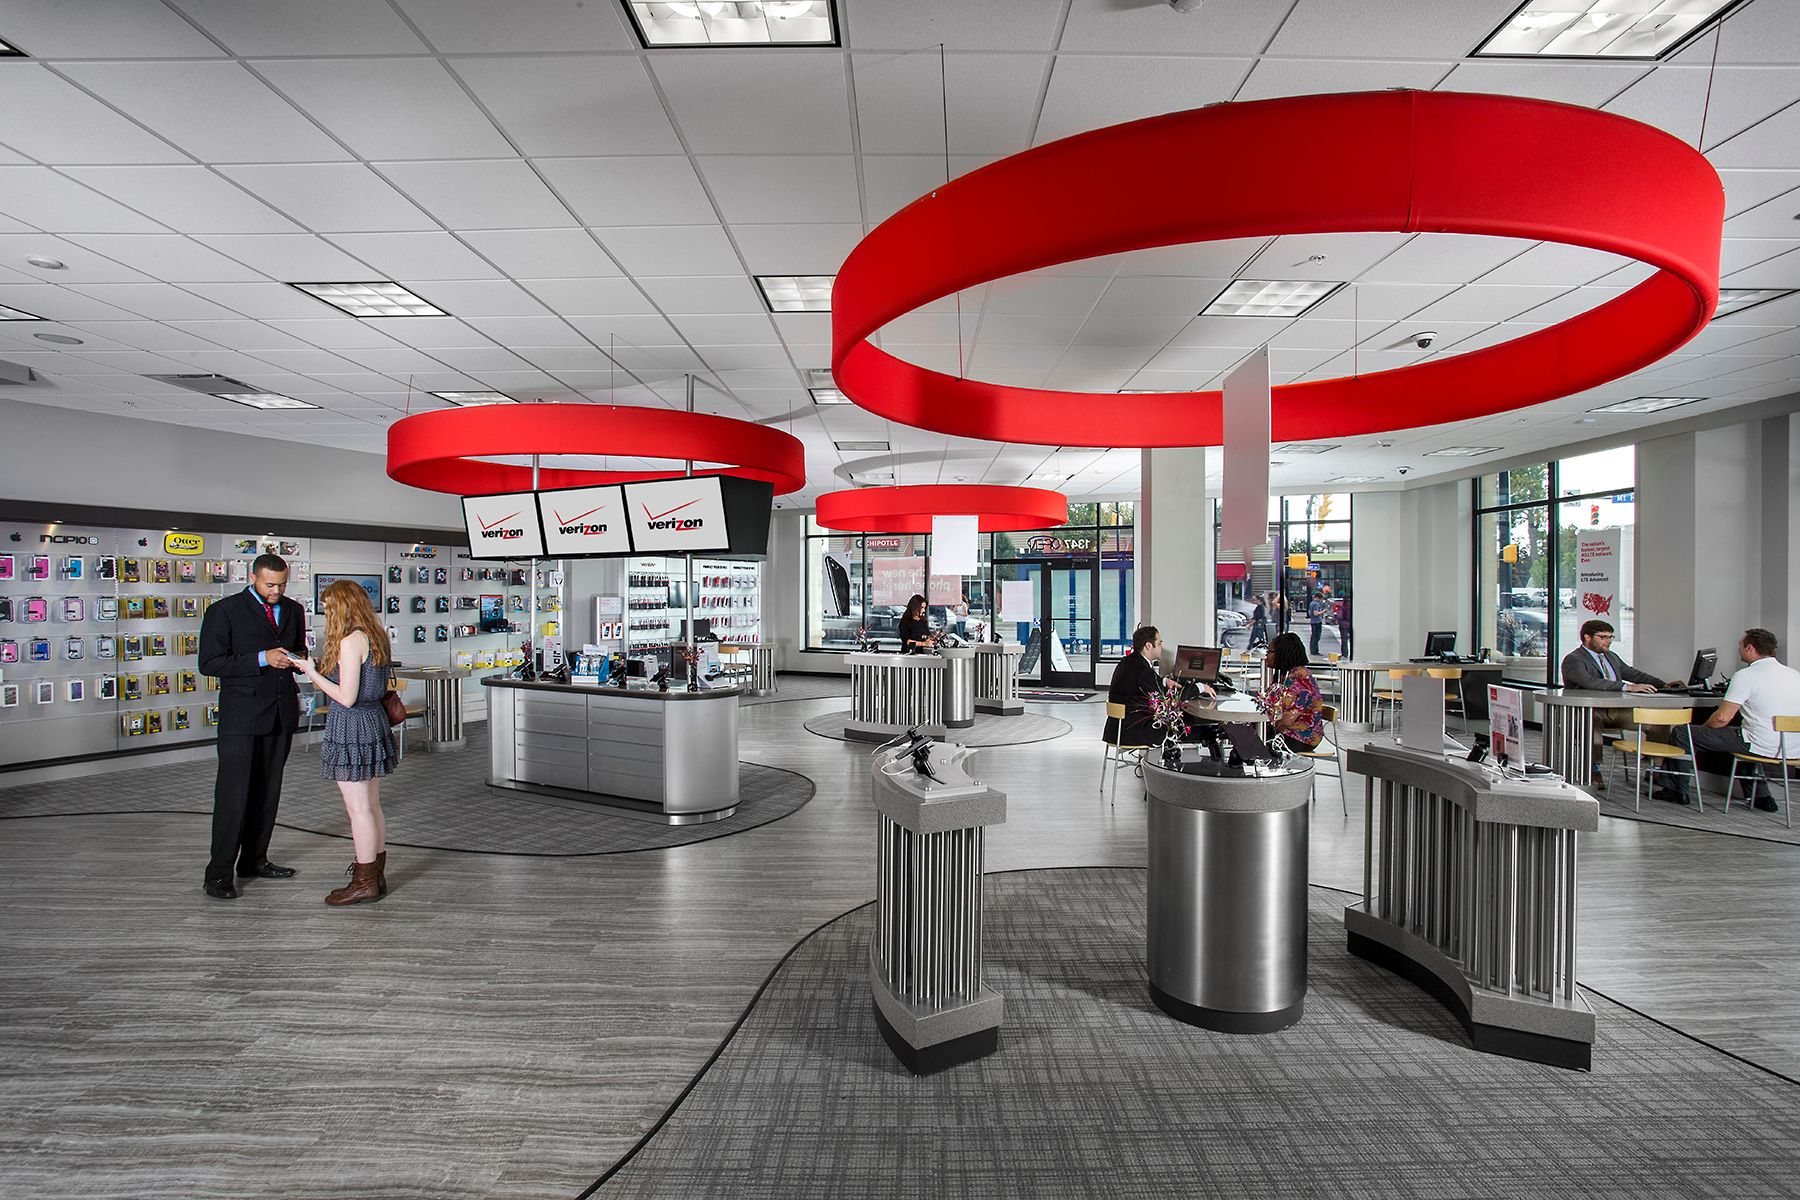 Gilbane.verizon.interior1.2Y.jpg